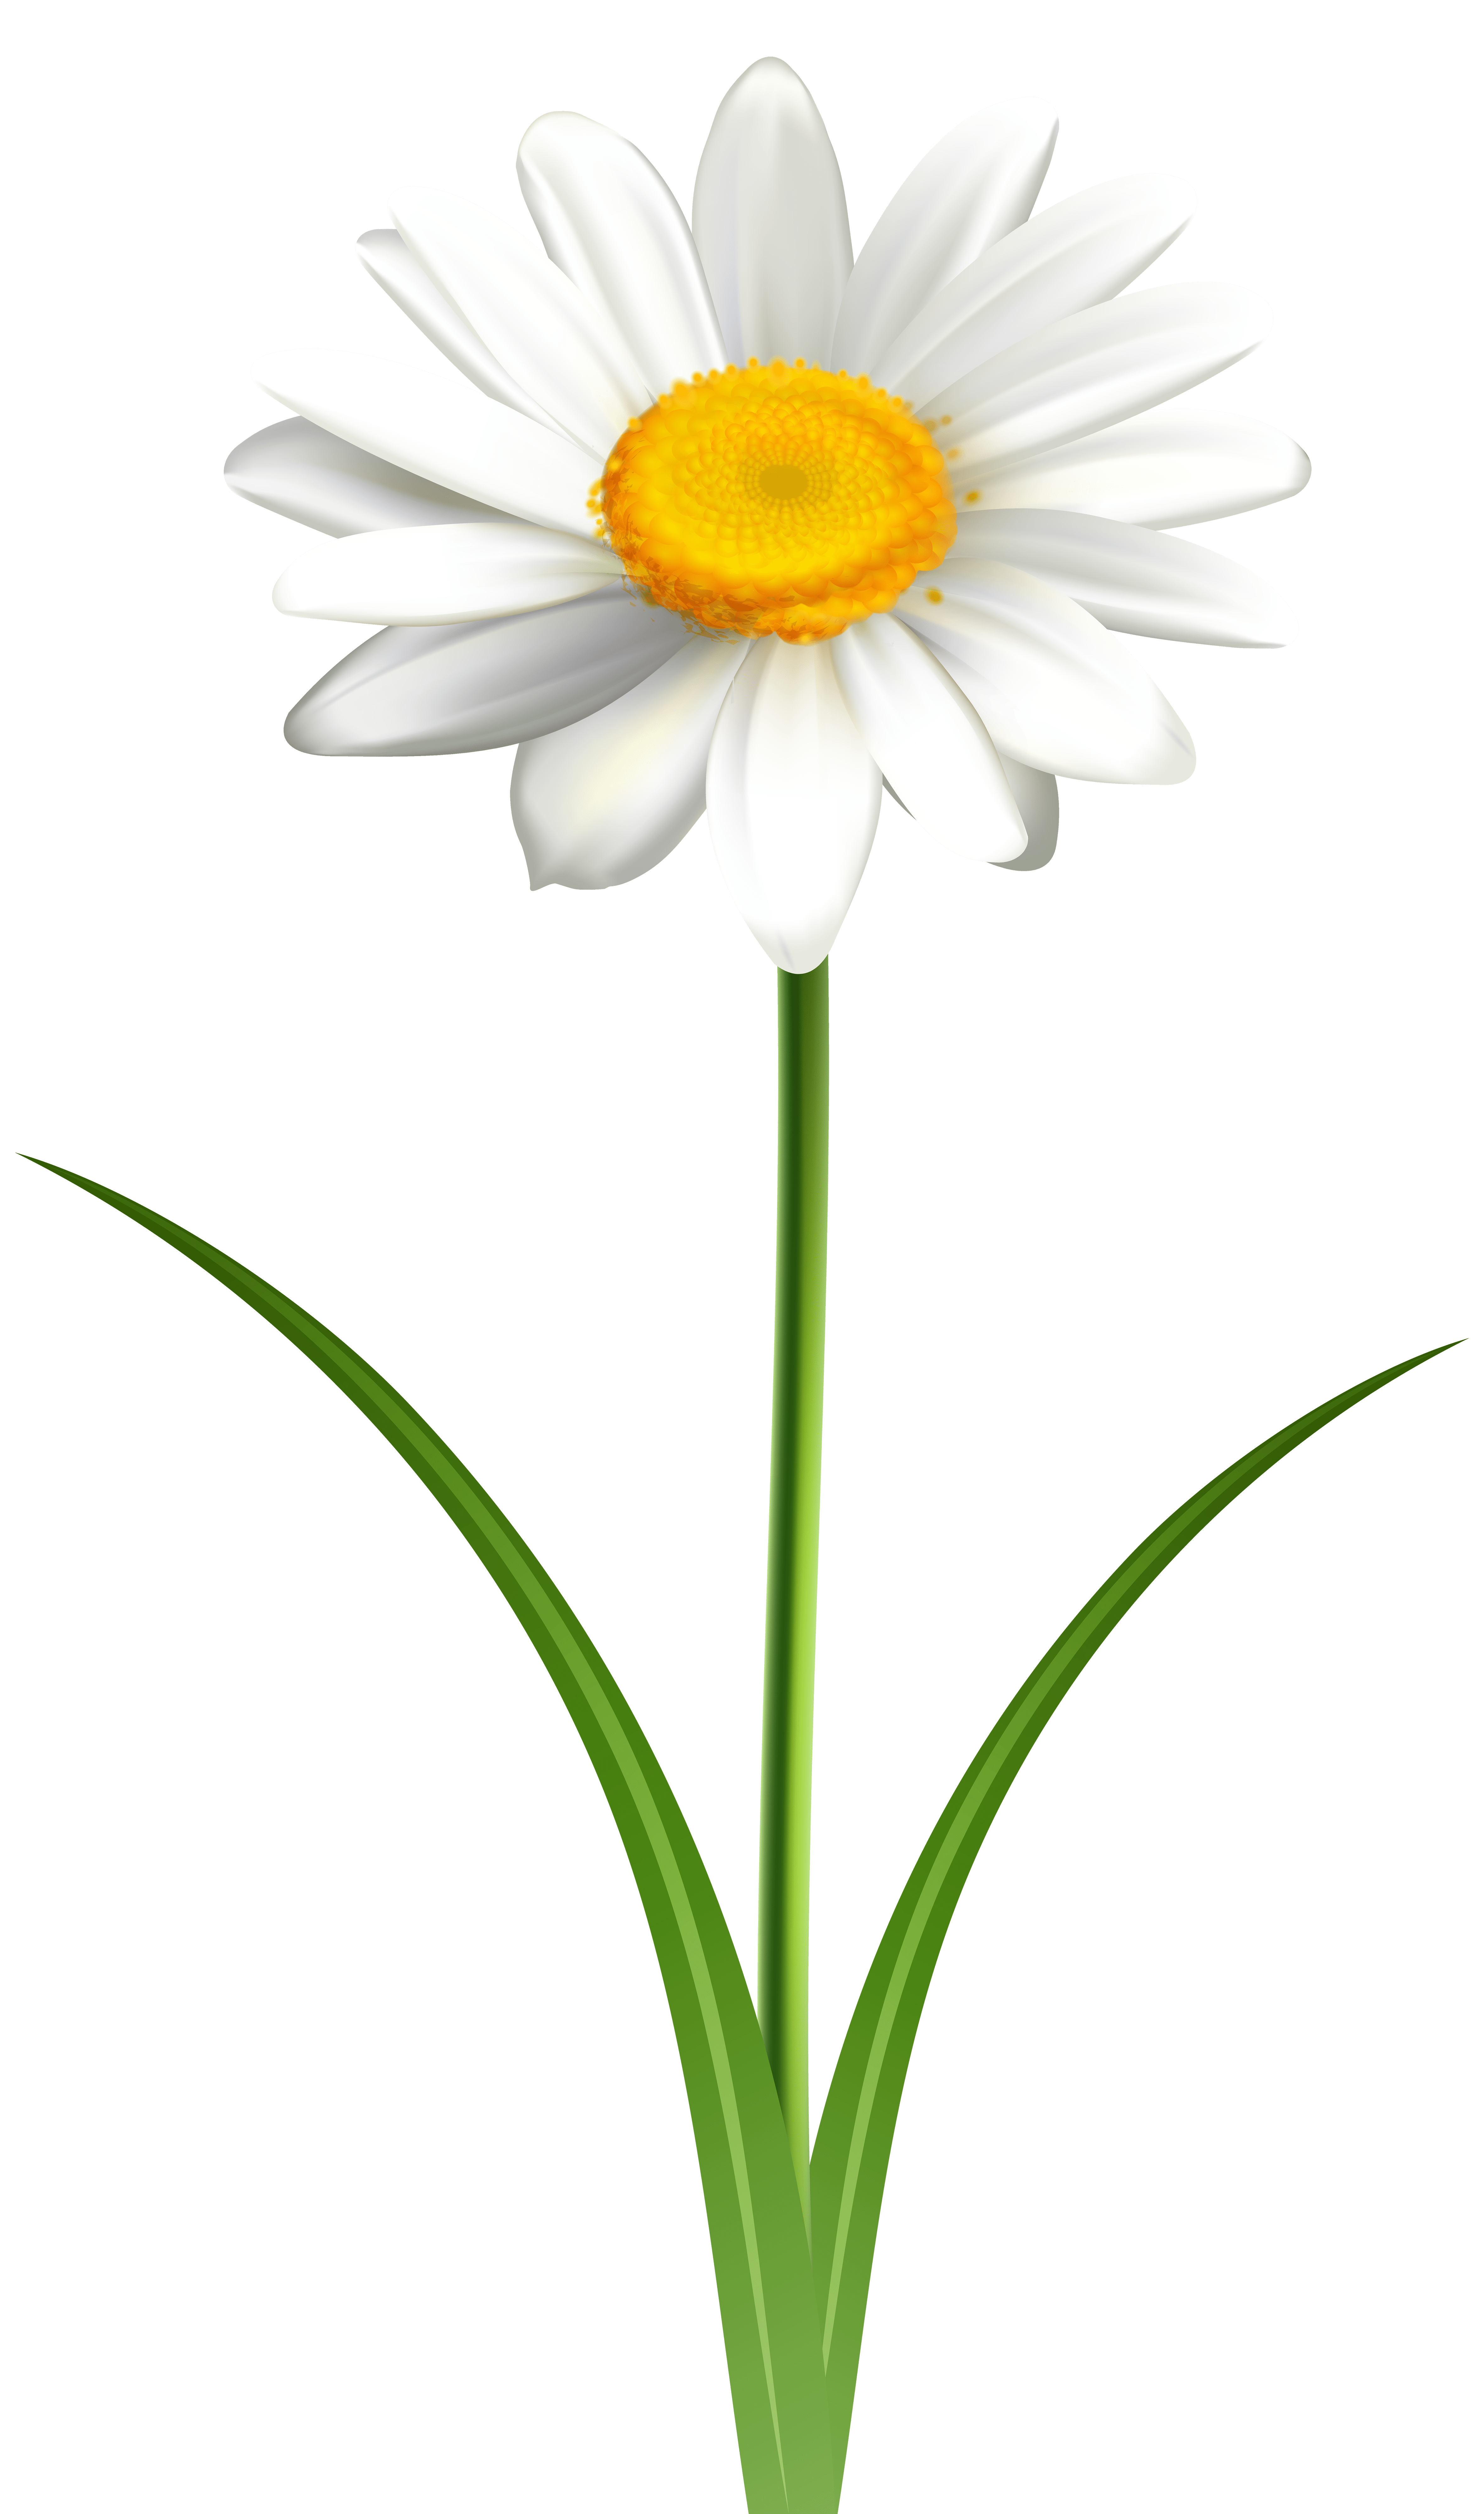 hight resolution of daisy flower transparent png clip art image